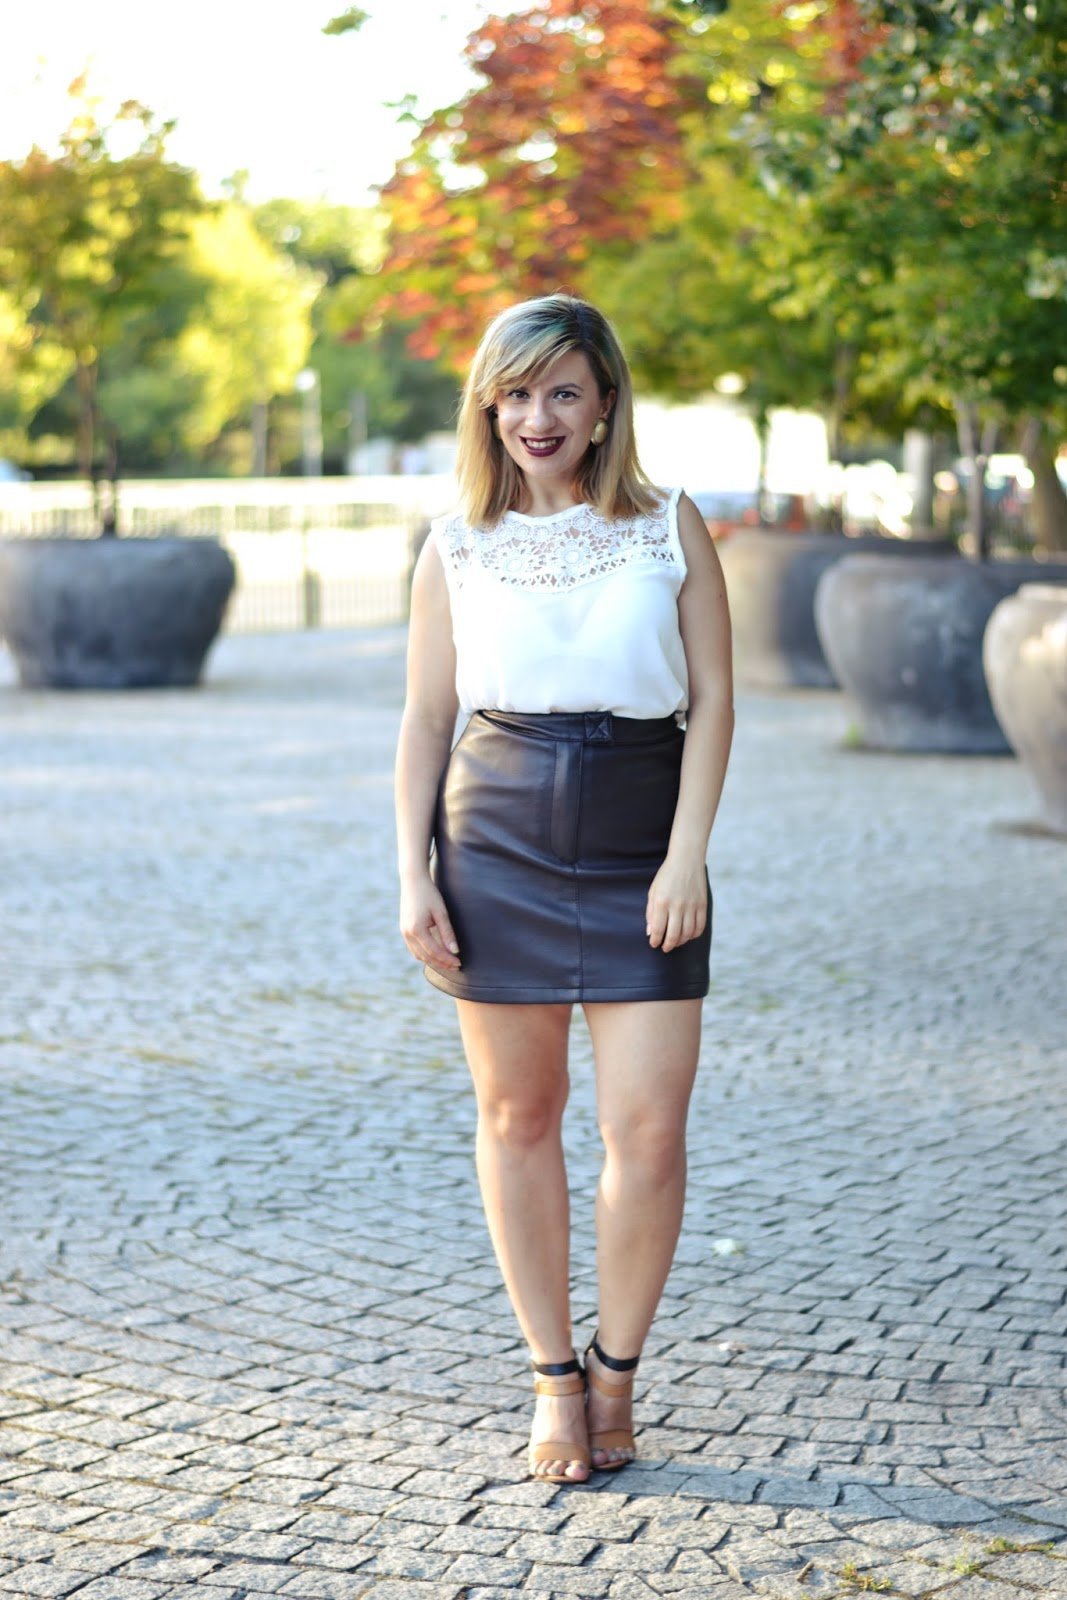 Leather skirt instagram – Fashionable skirts 2017 photo blog